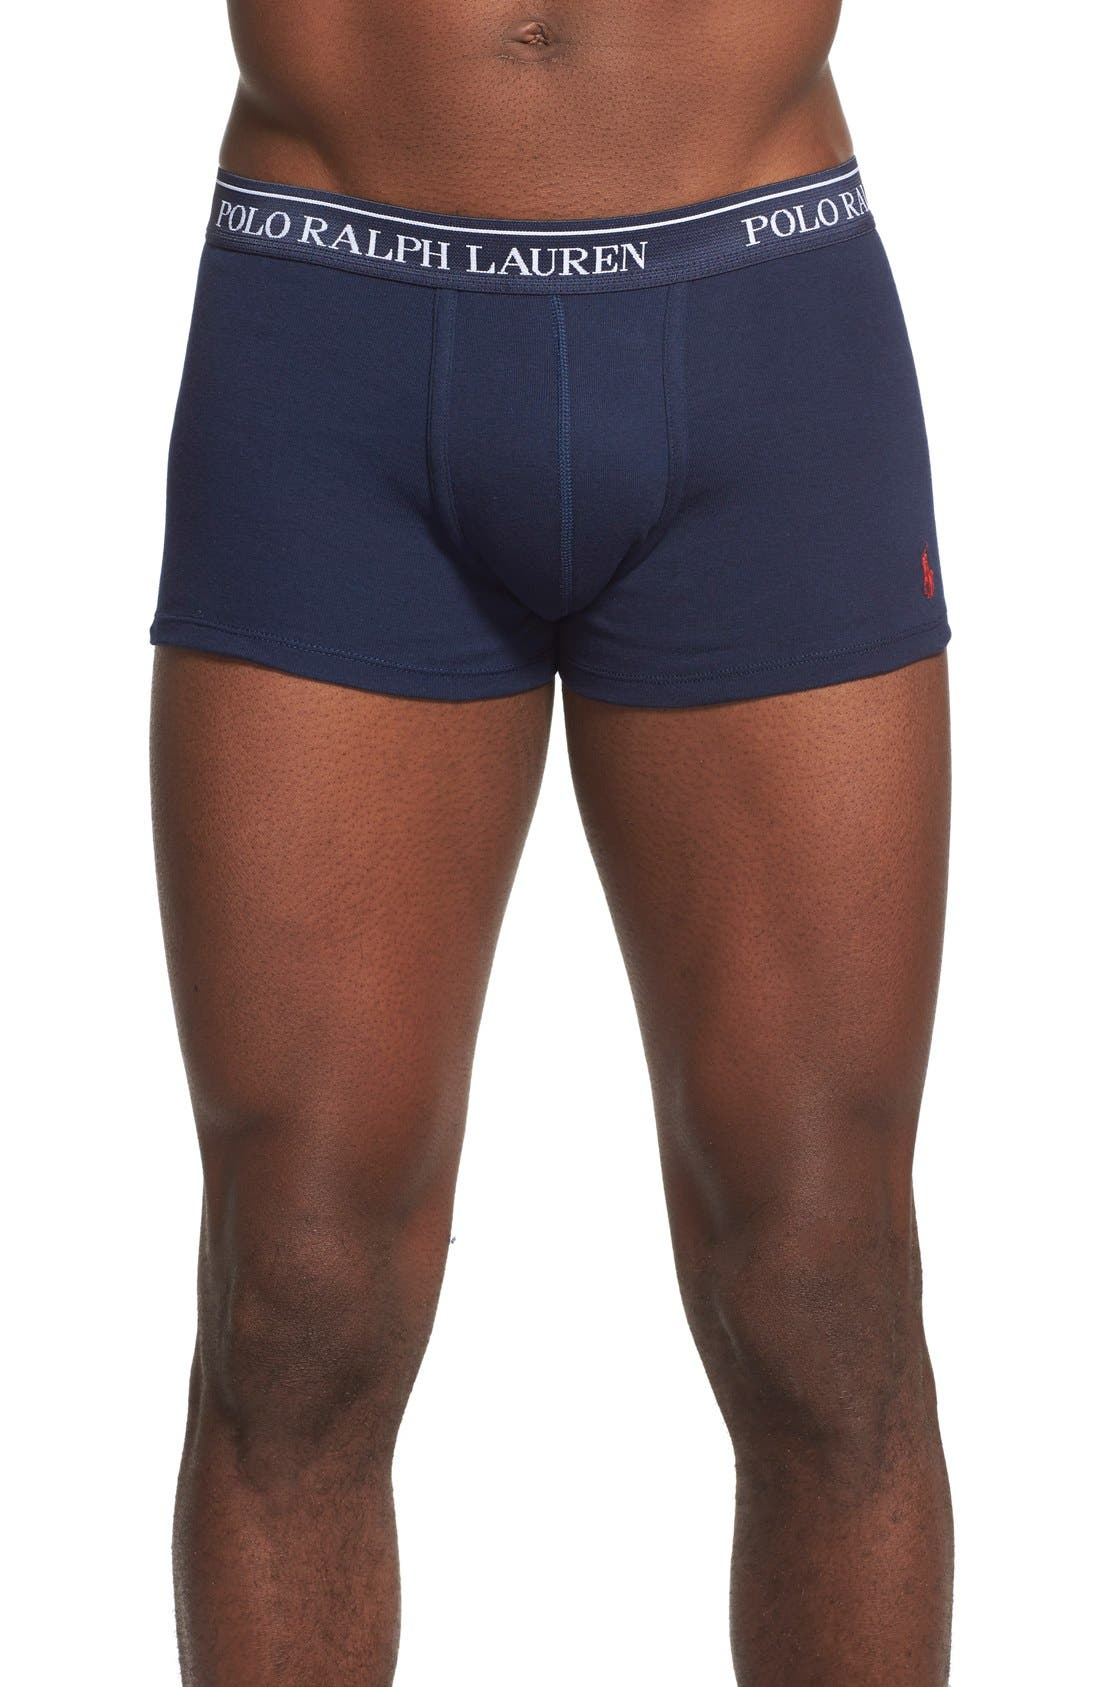 Alternate Image 1 Selected - Polo Ralph Lauren 3-Pack Cotton Trunks